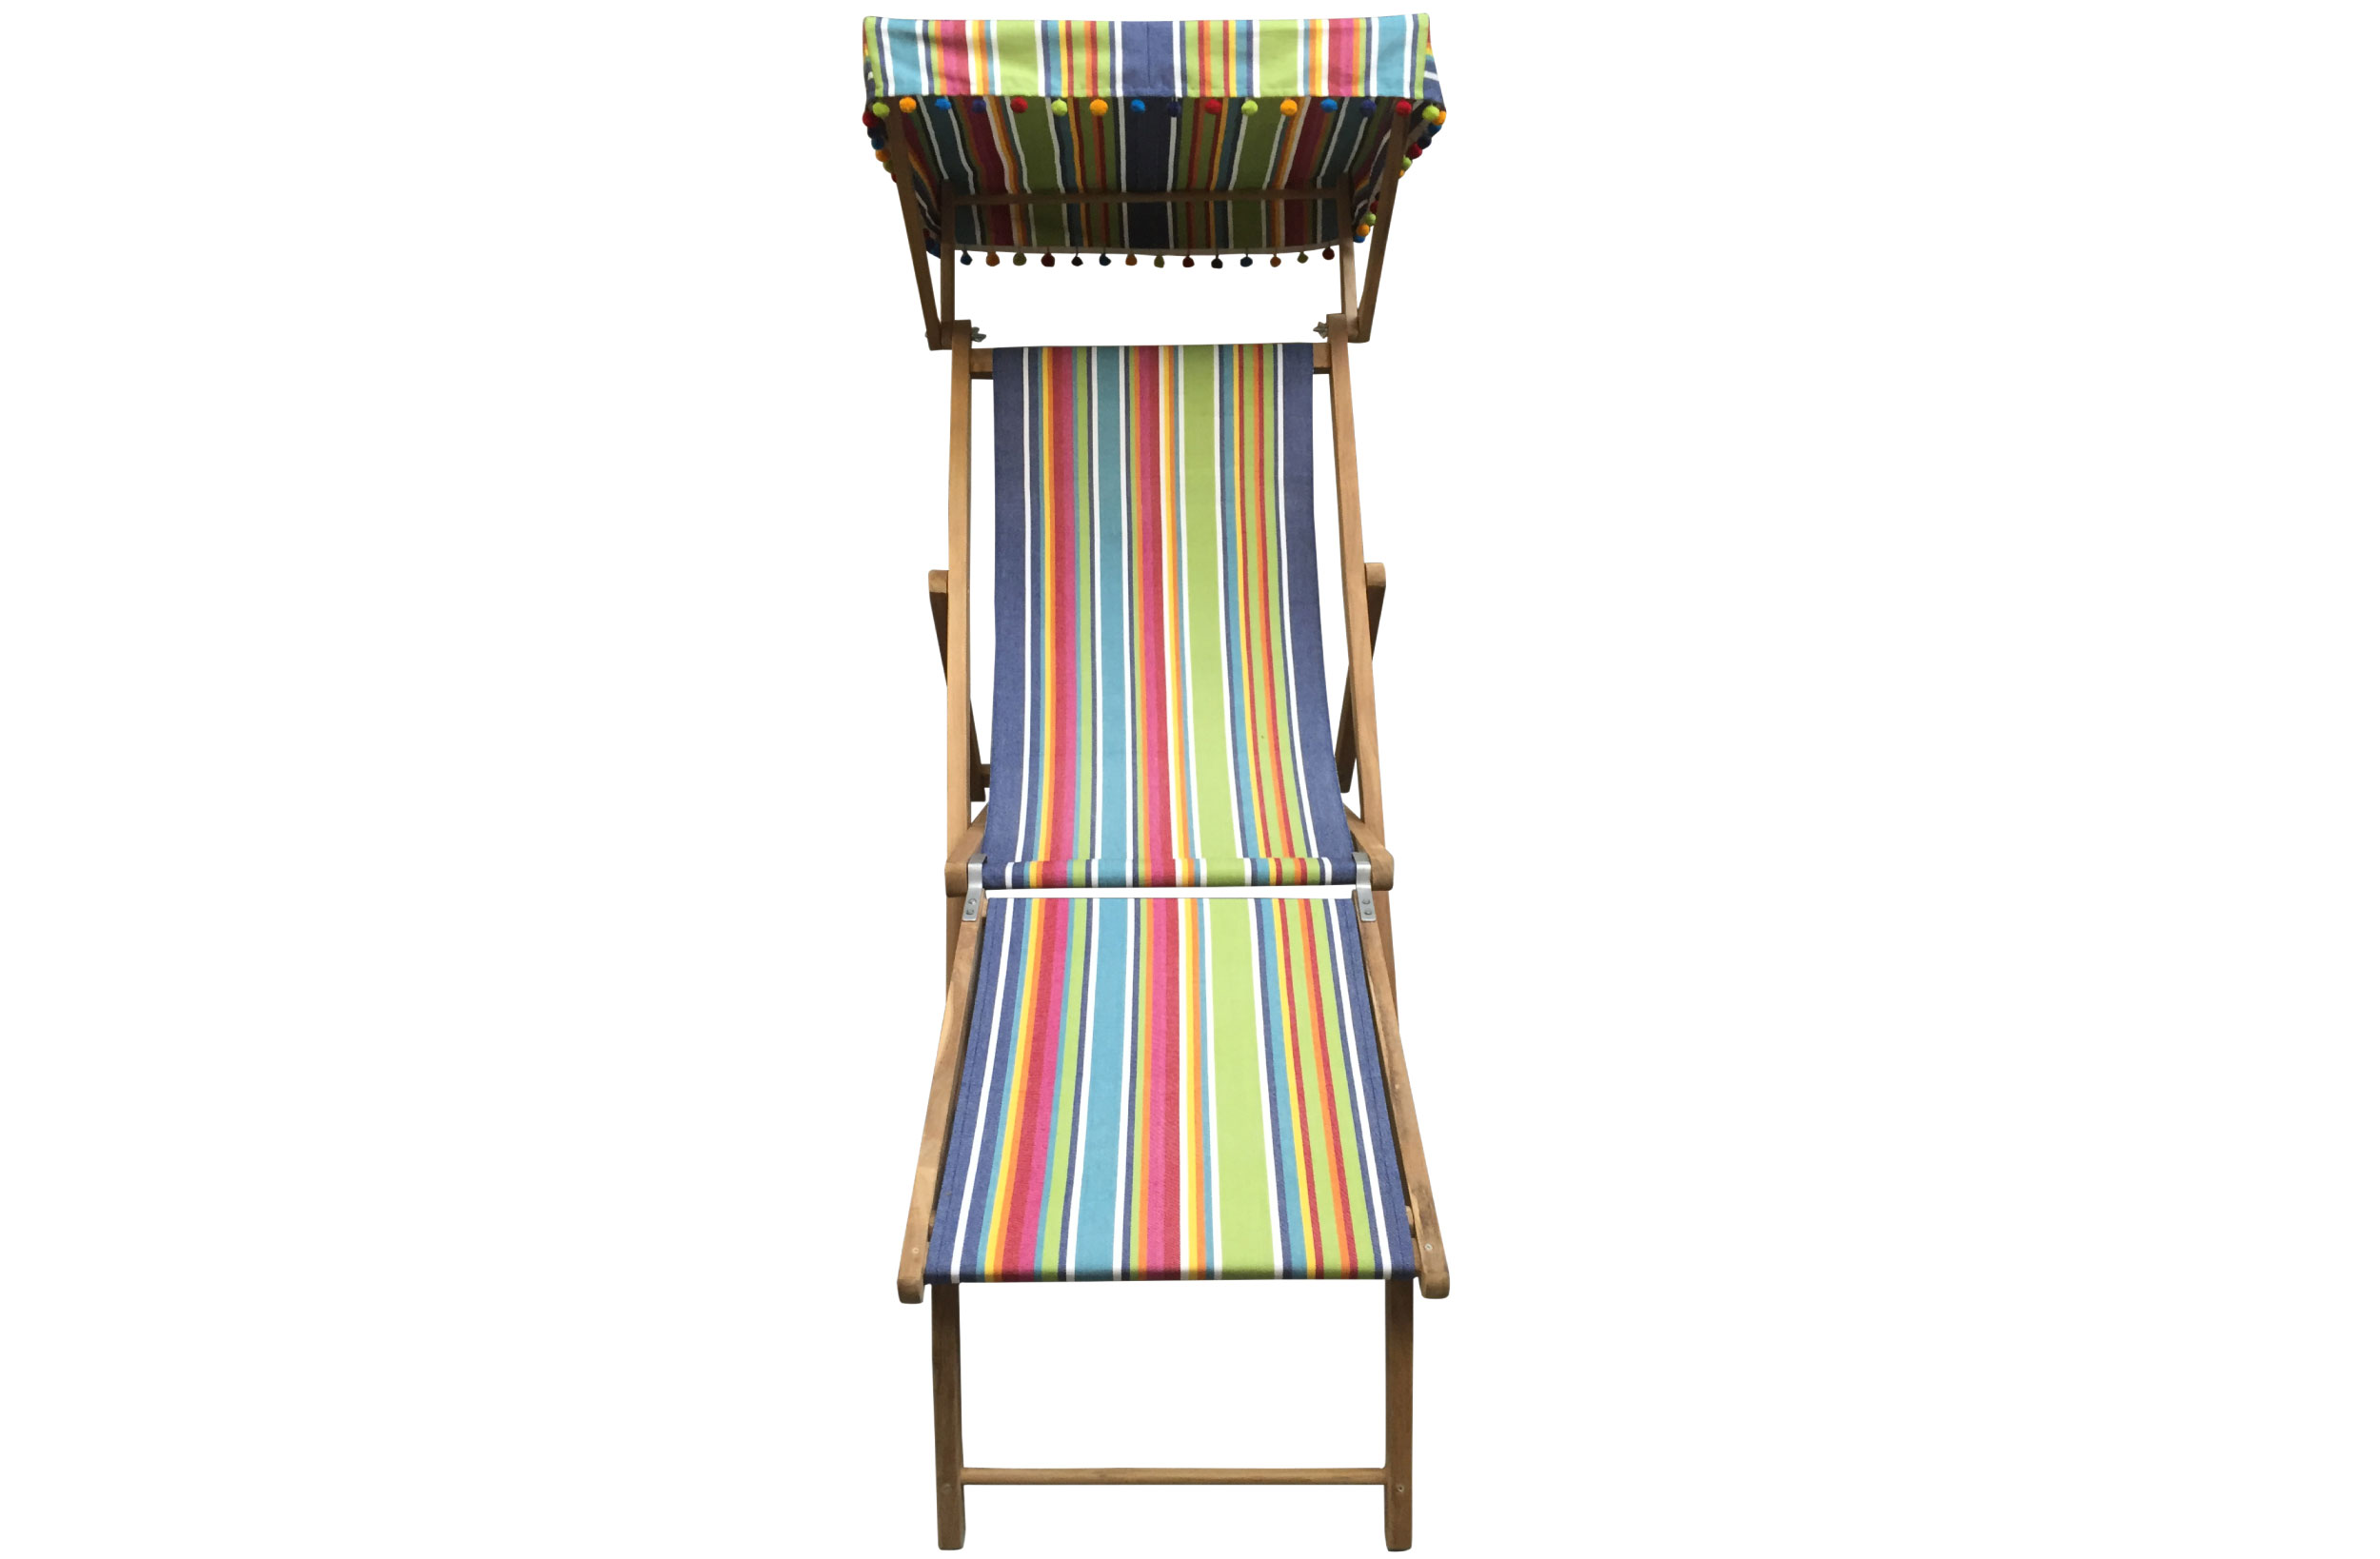 blue, green, red - Edwardian Deckchairs with Canopy and Footstool